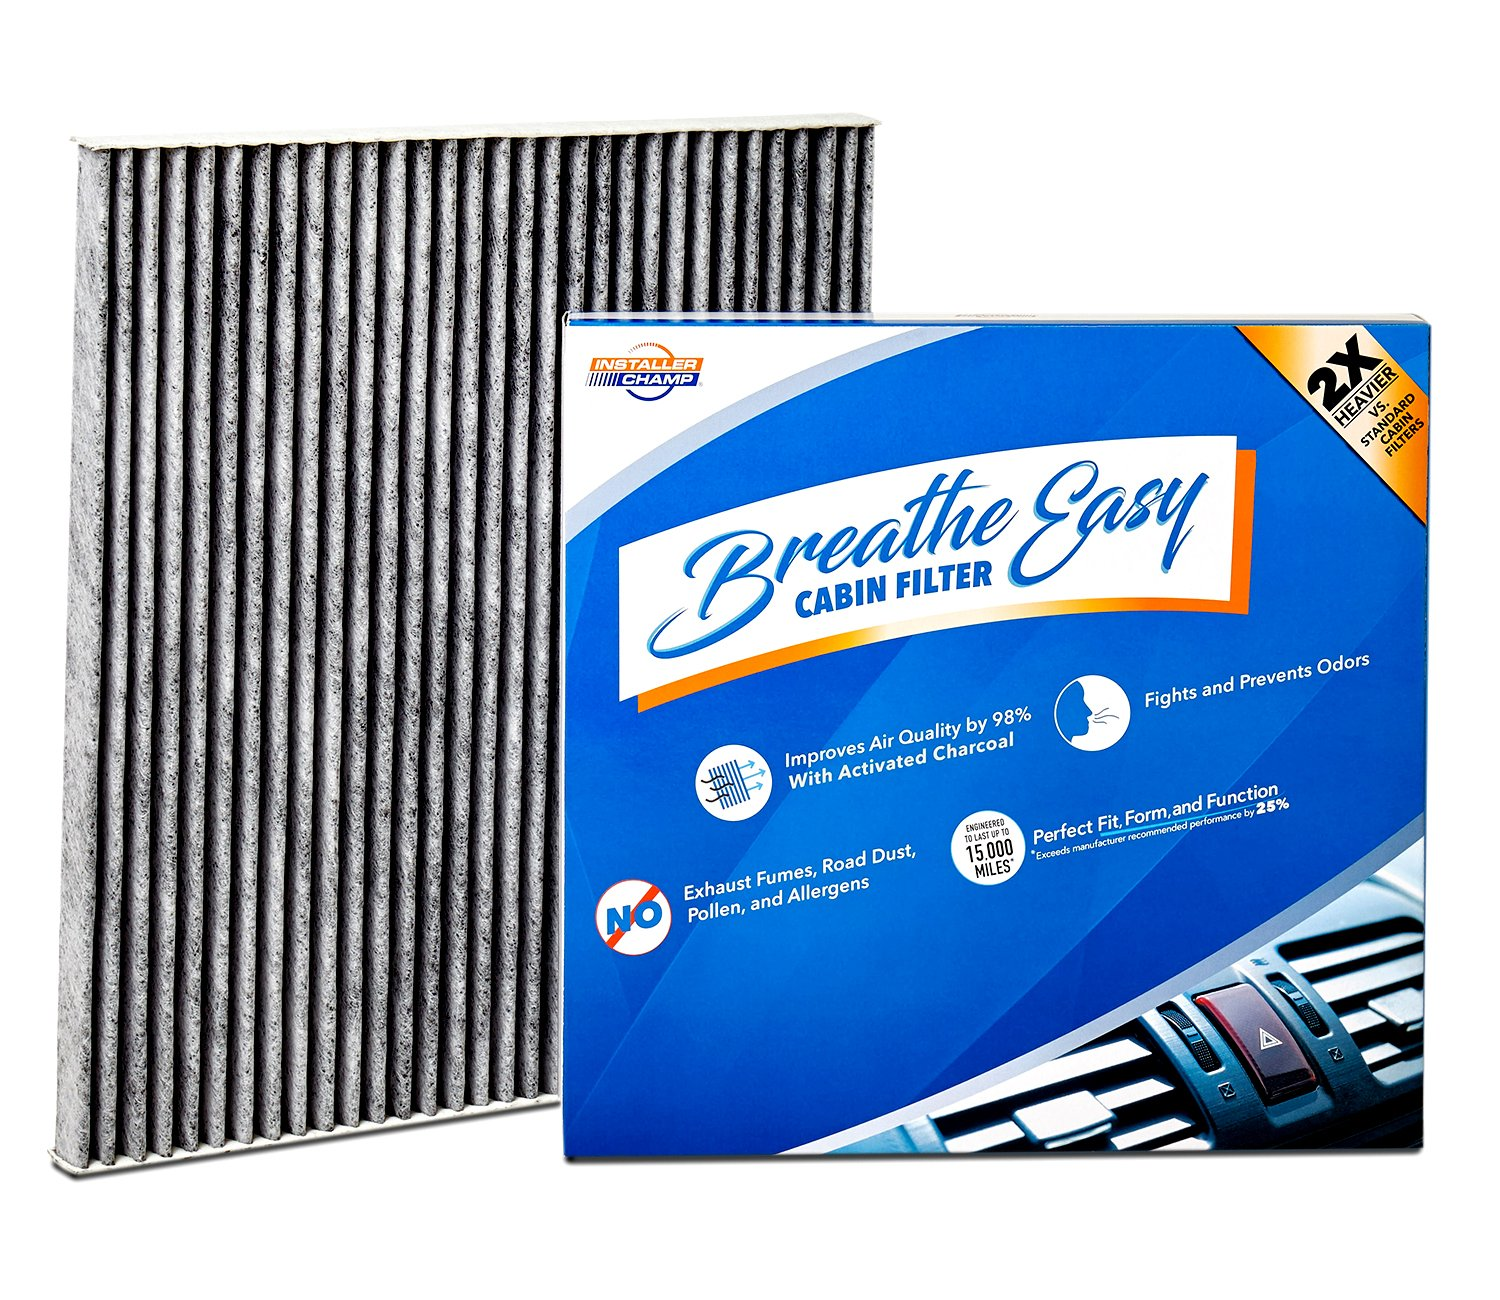 Low Cost Installer Champ Breathe Easy Cabin Filter, Up To 25% Longer Life